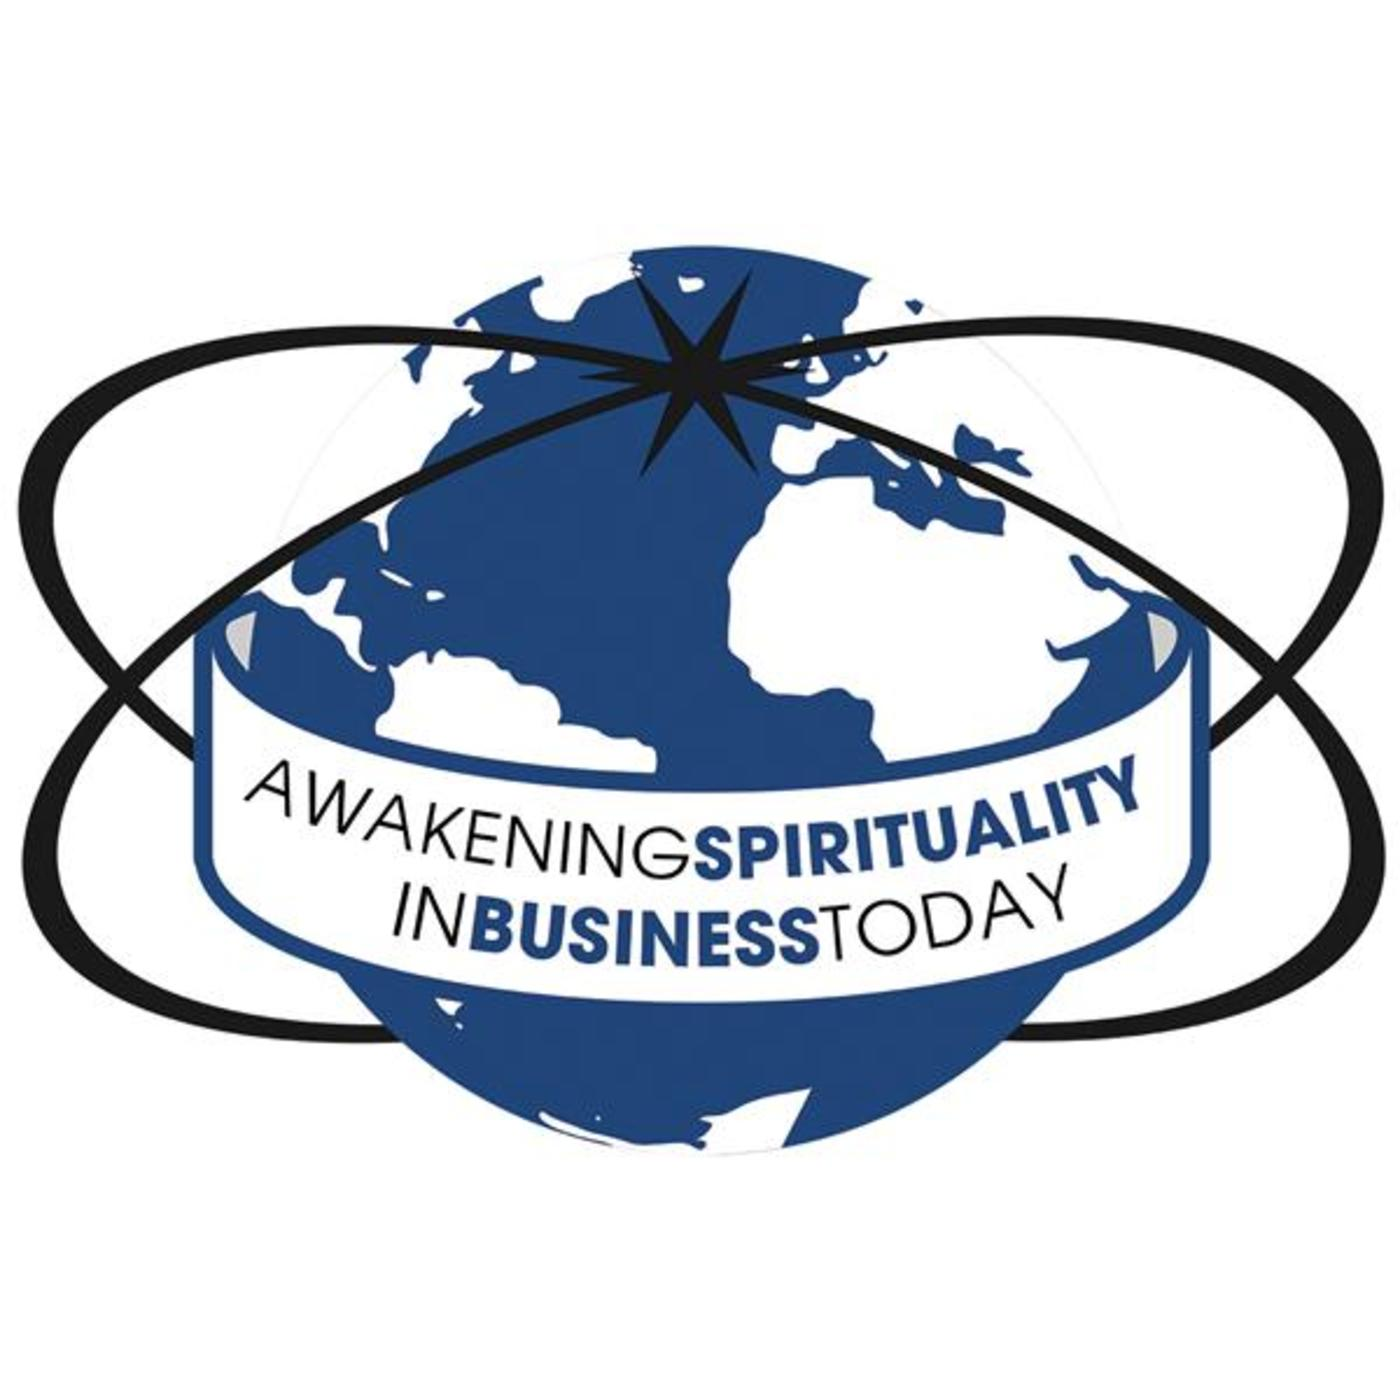 Awakening Spirituality In Business